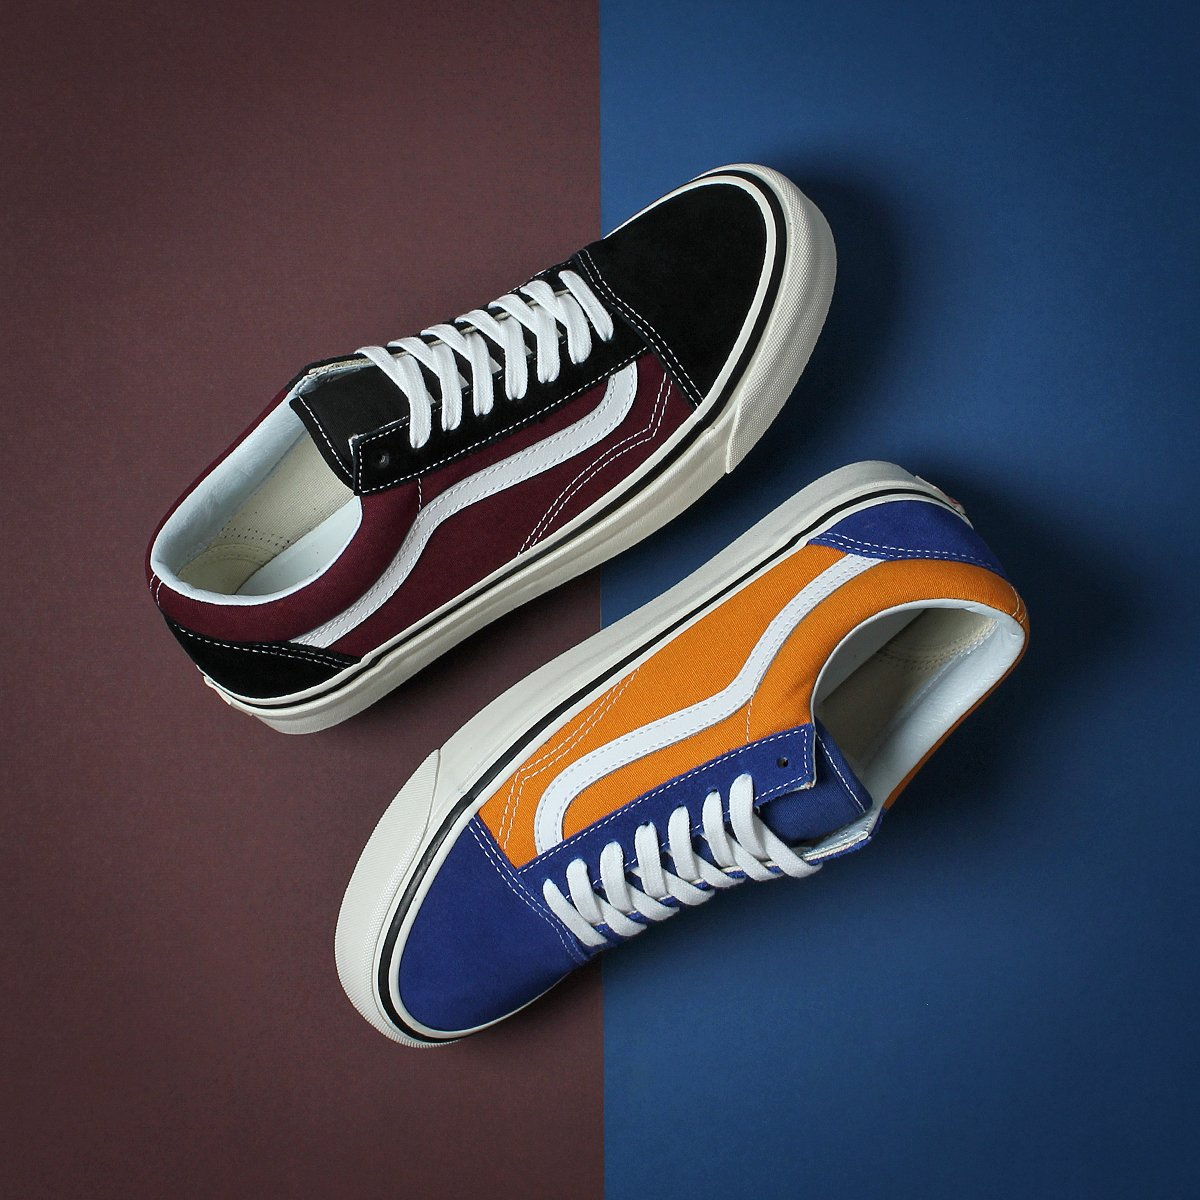 ... the Vans Old Skool 36 DX Shoes are another addition to the Anaheim  Factory Pack... https   goo.gl IRiqjn pic.twitter.com a6YMbOXkUL c83d26158